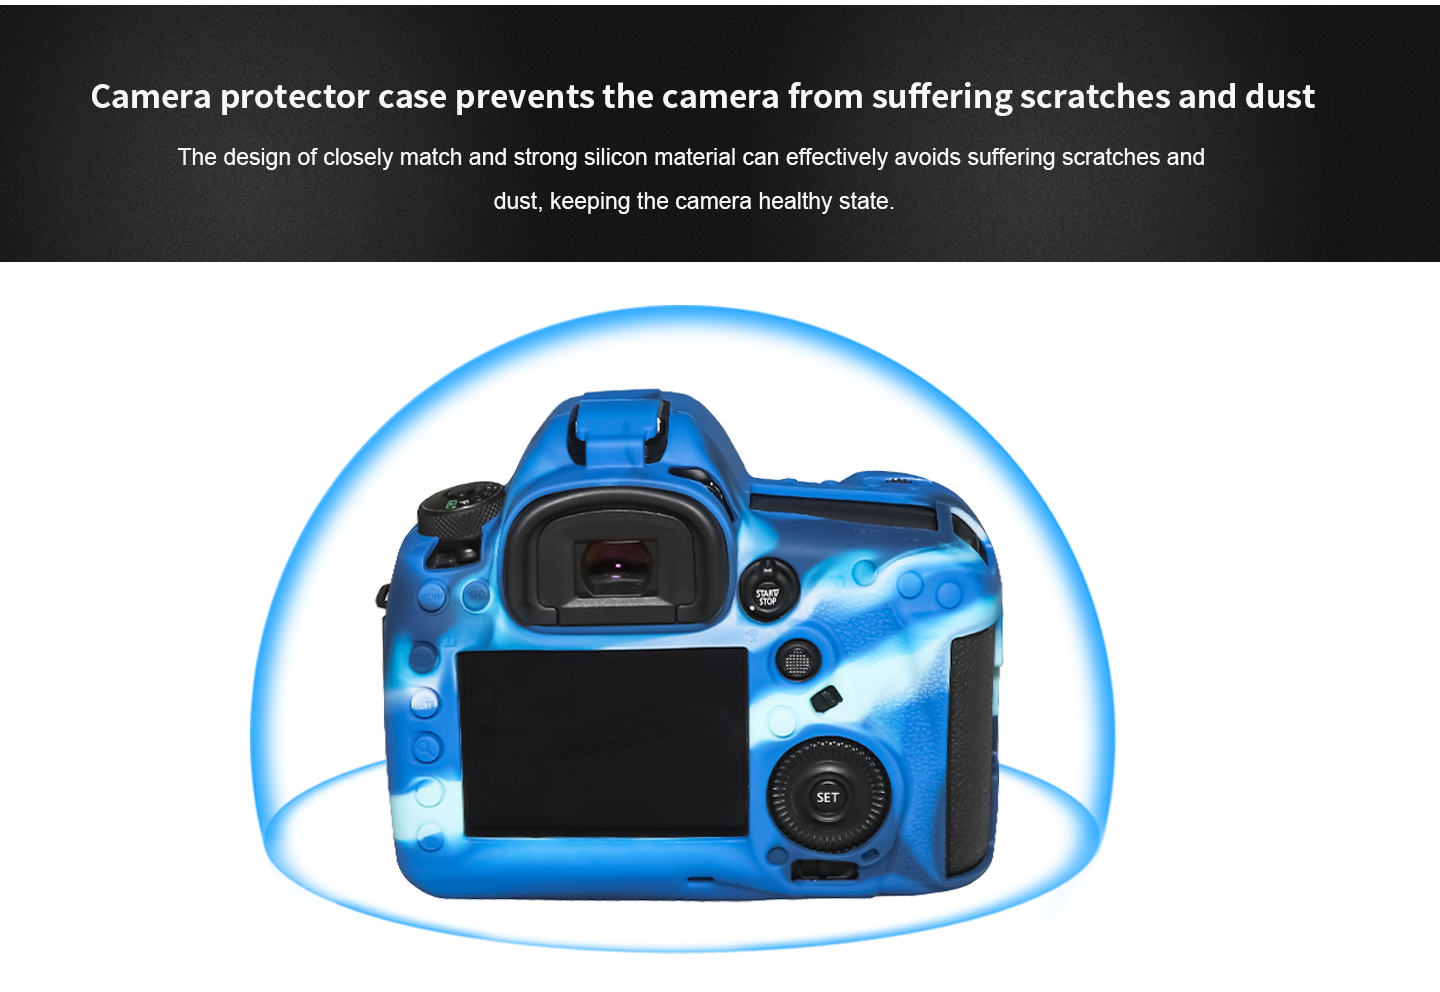 Camera protector case prevents the camera from suffering scratches and dust